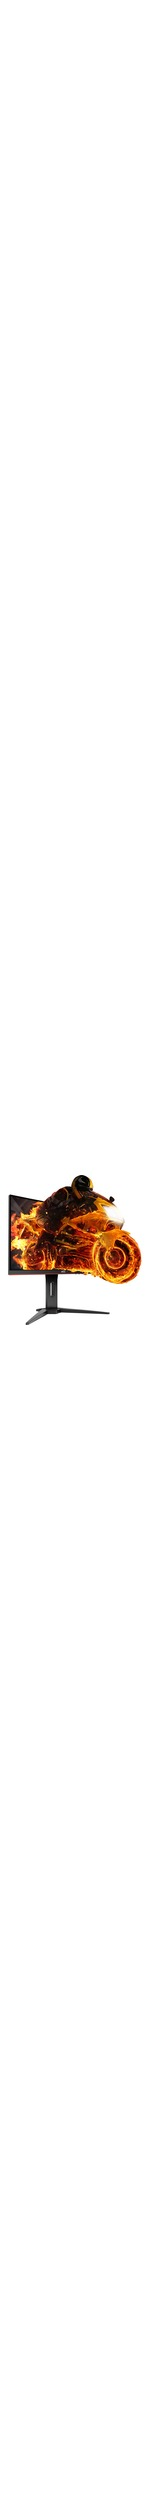 AOC C24G1 24And#34; Full HD Curved Screen WLED LCD 144Hz Gaming Monitor - 16:9 - Black